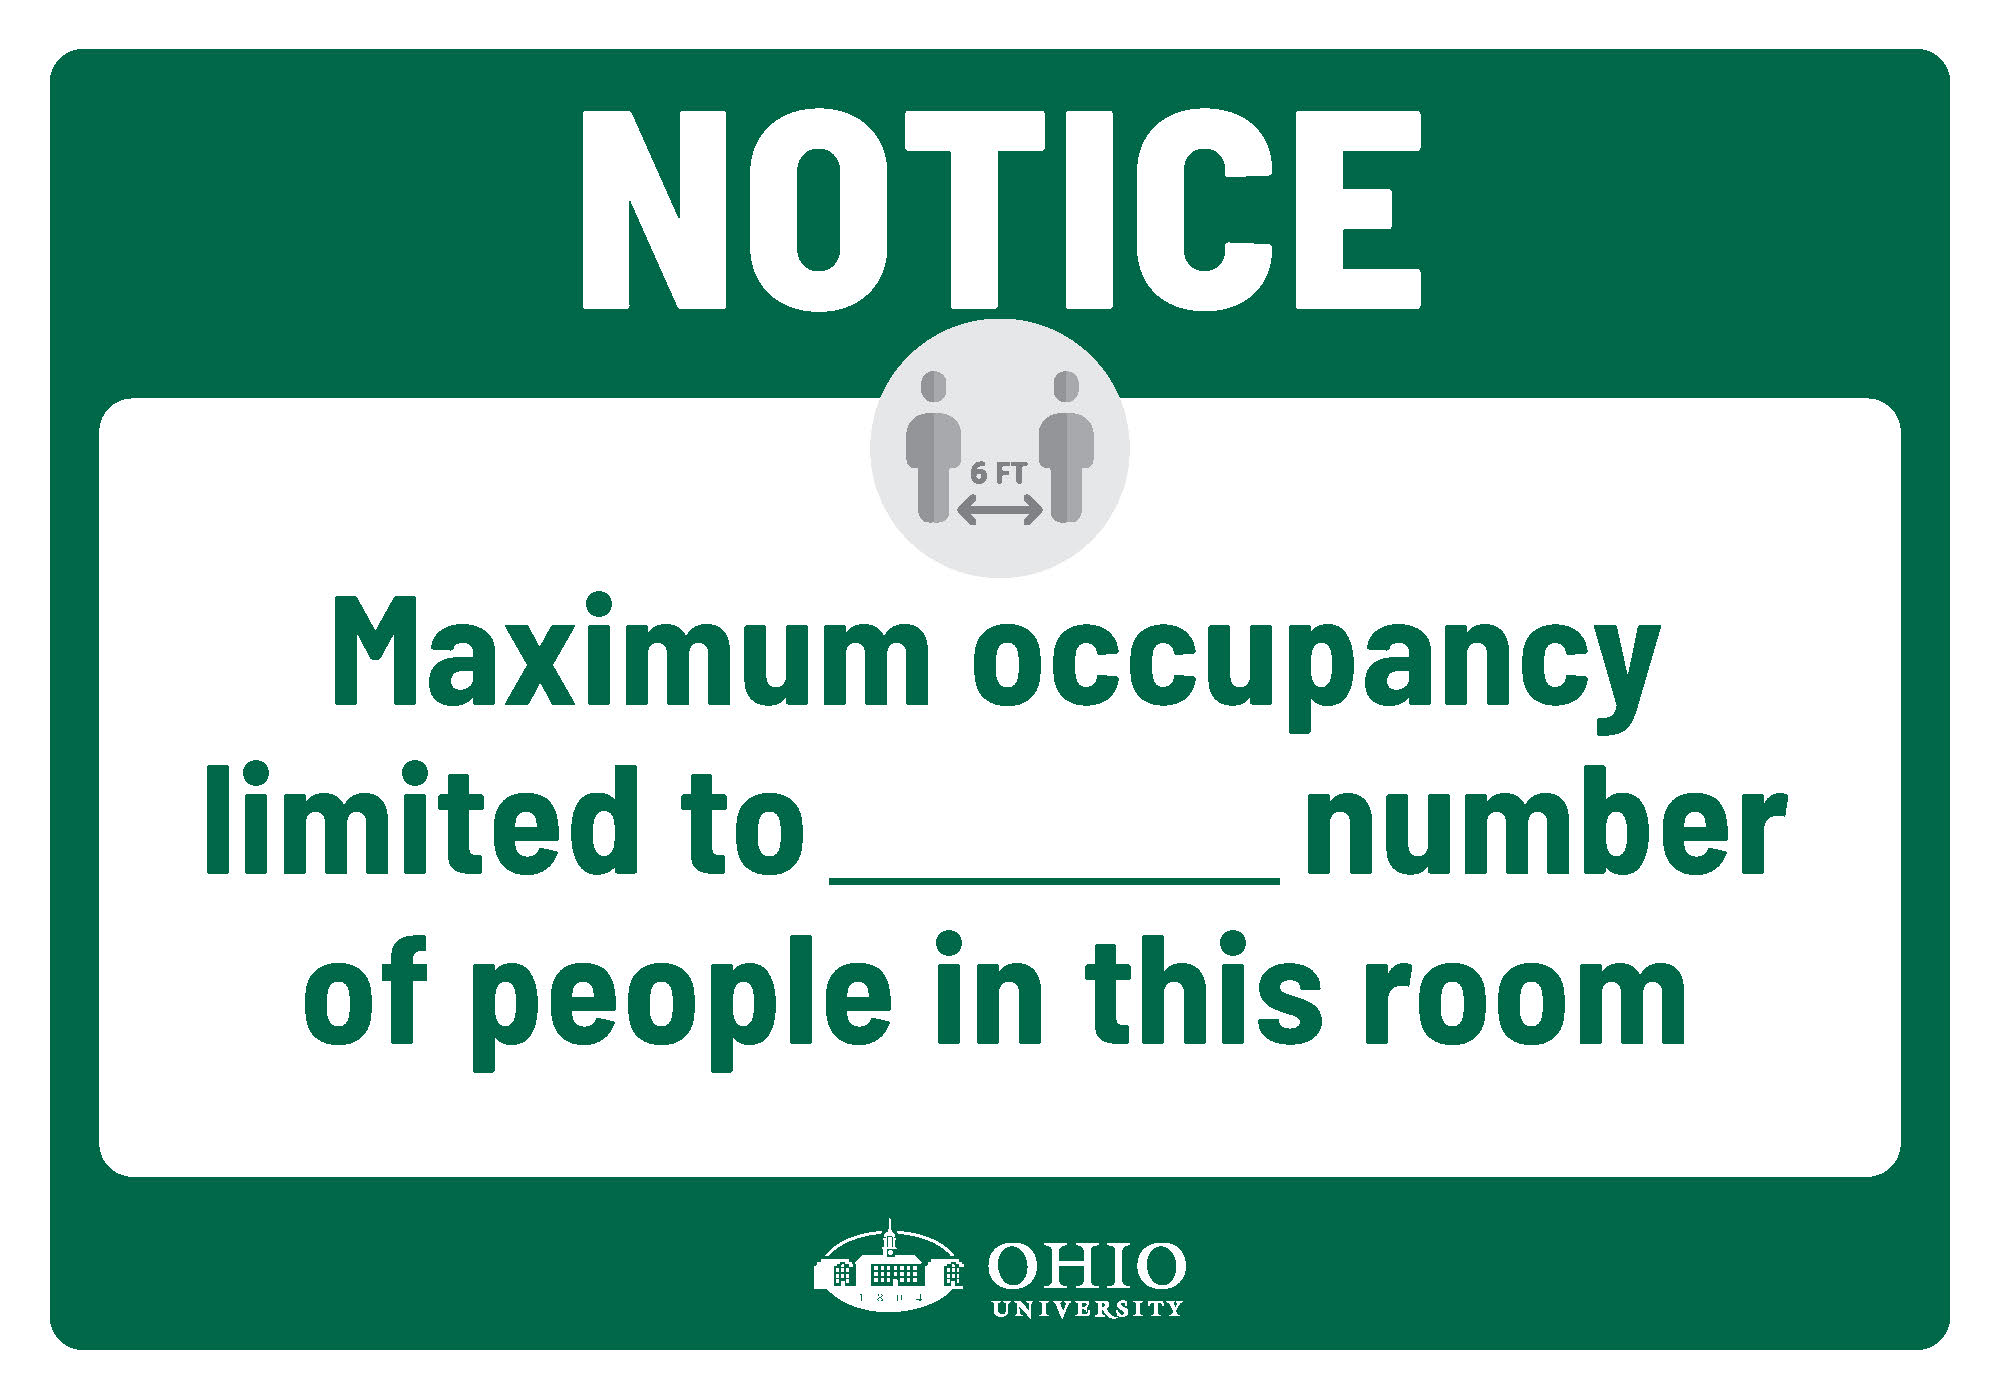 Sign that says: Notice. Maximum occupancy limited to [blank] number of people in this room.